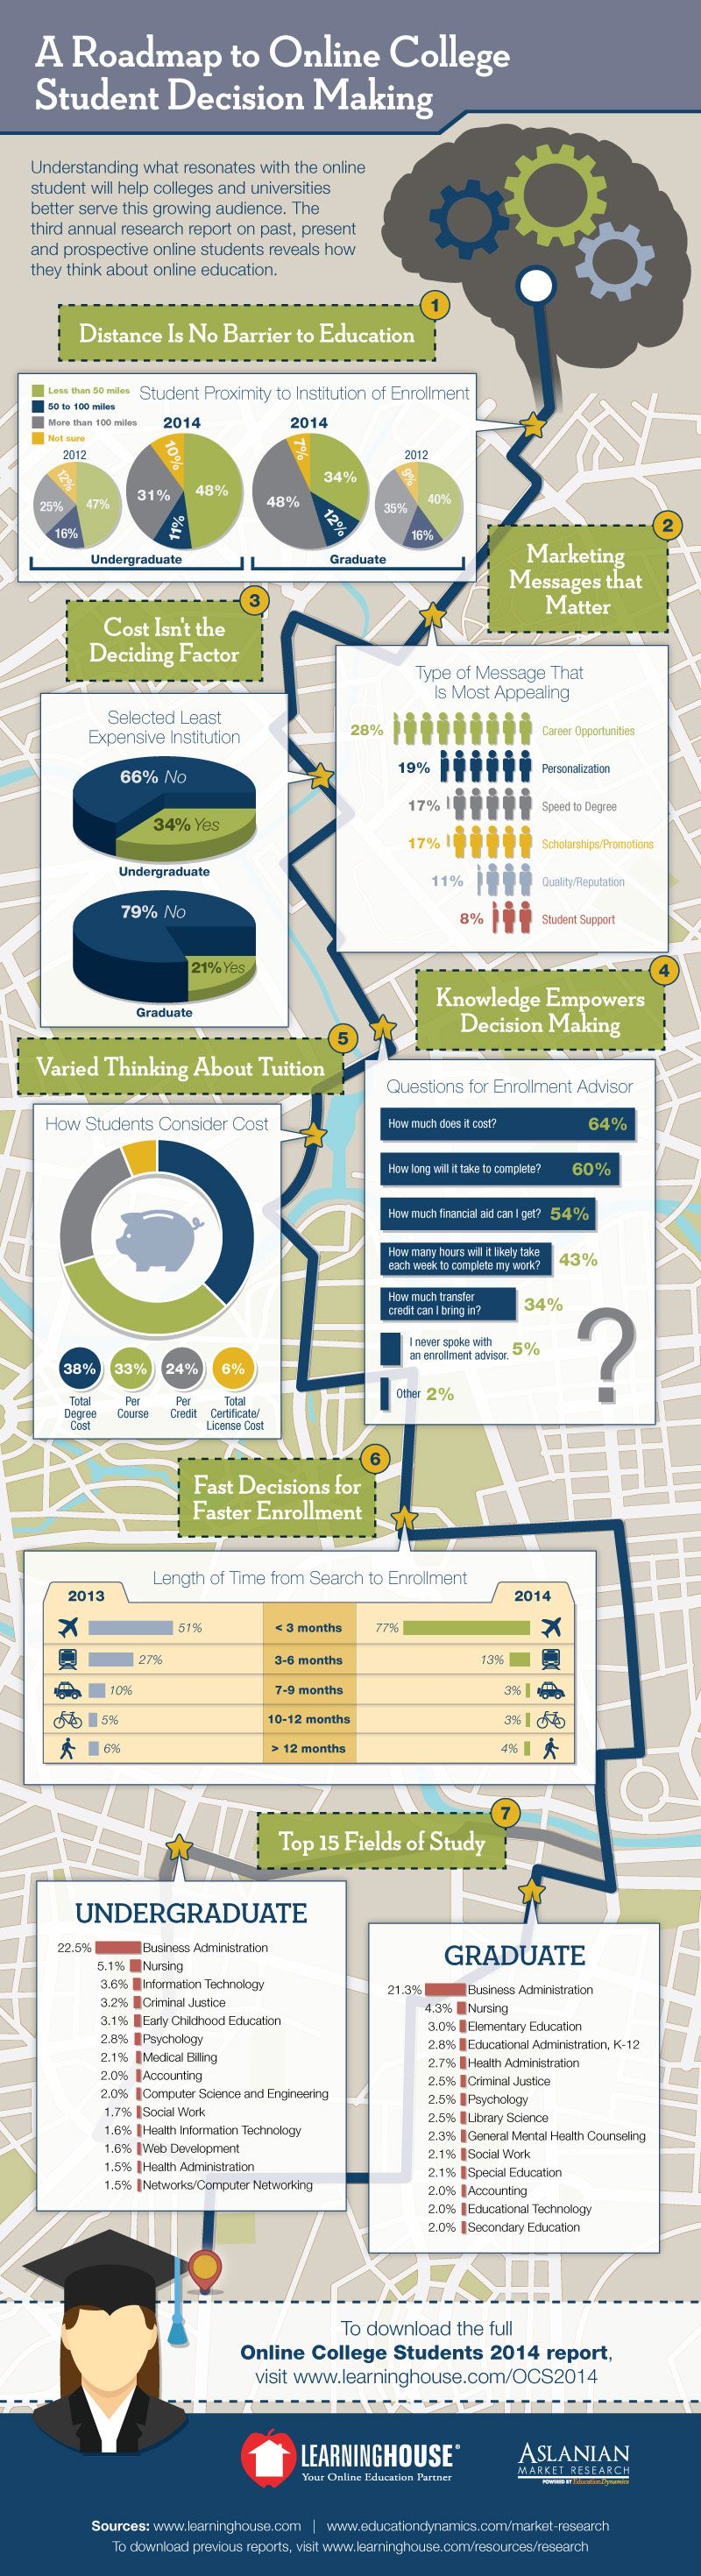 A-Roadmap-to-Online-College-Student-Decision-Making-Infographic-The-Learning-House